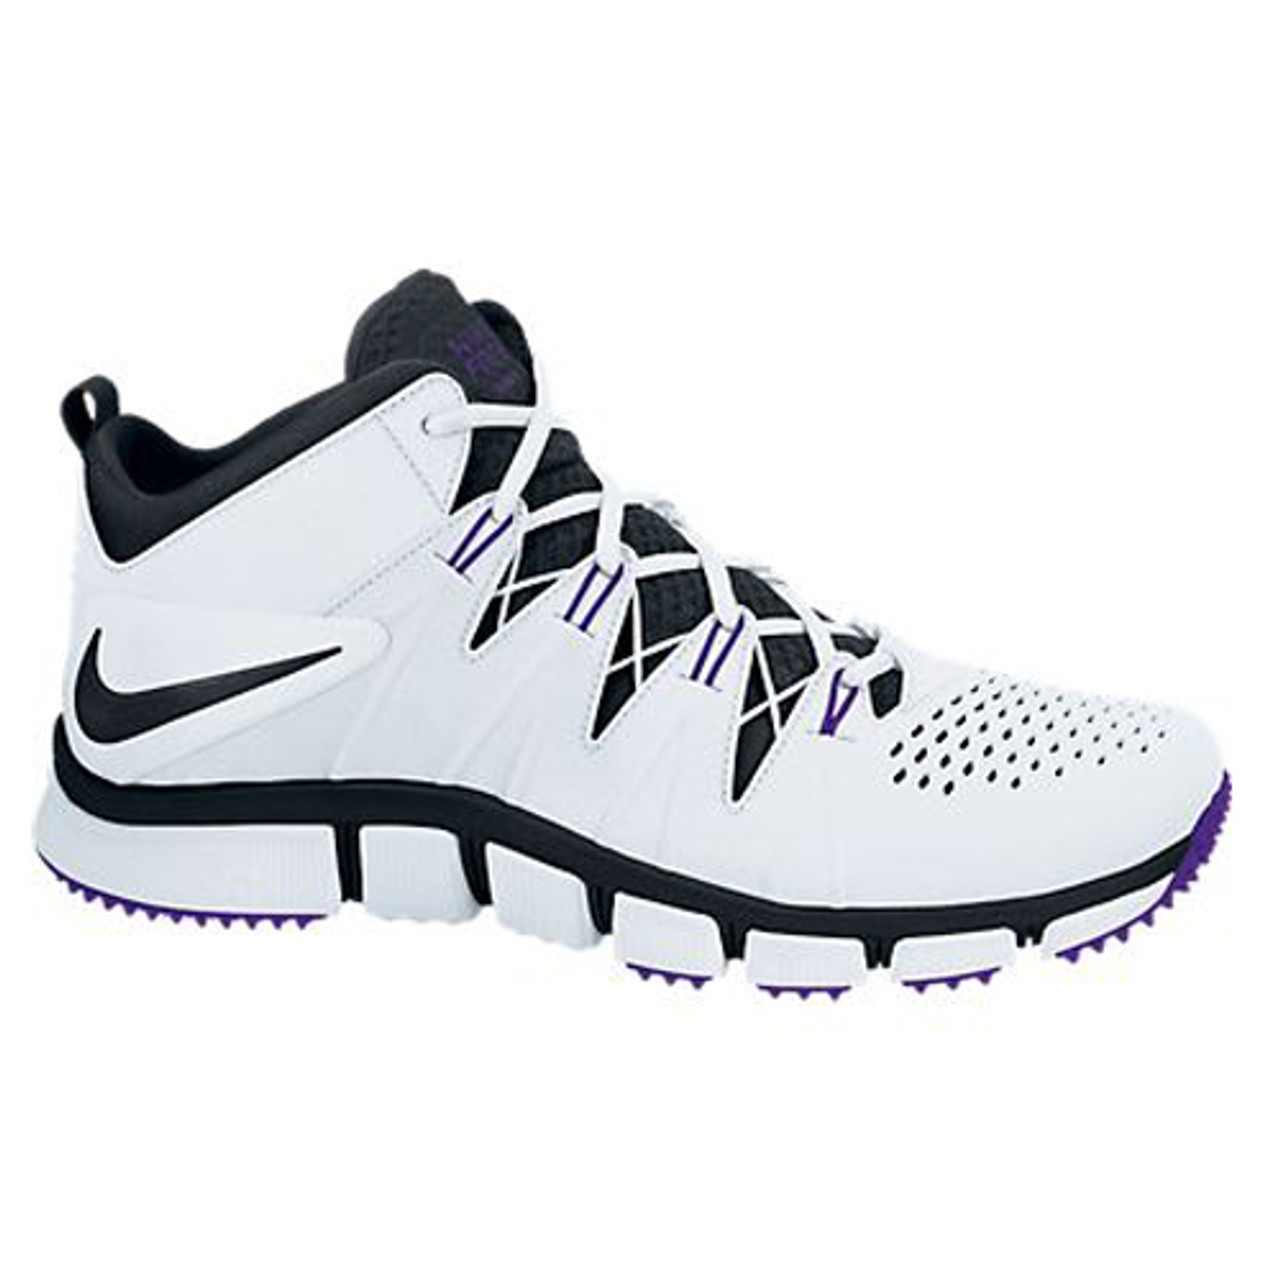 brand new d2b0c e7d33 Nike Free Trainer 7.0 White Black Mens Cross Trainers - Shop now   Shoolu.